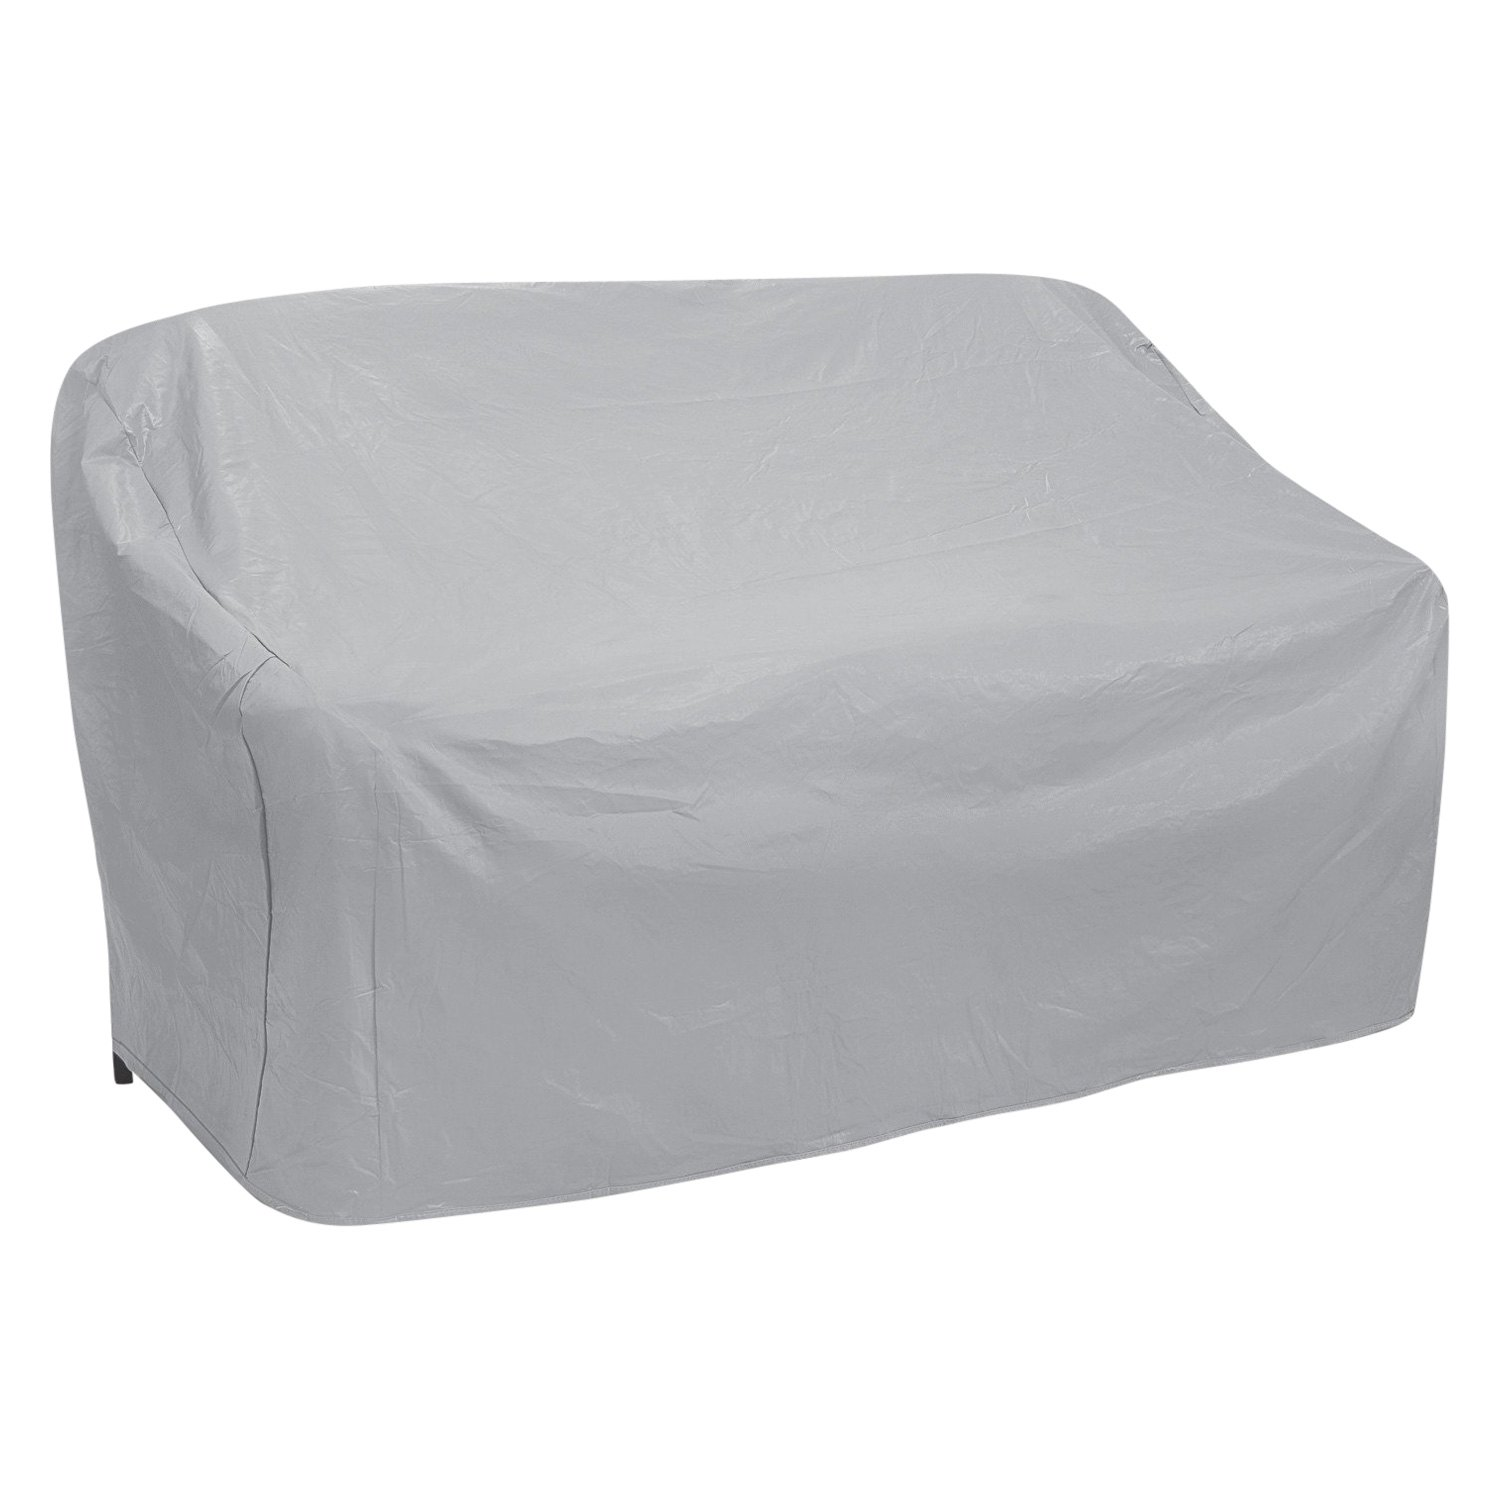 lillberg 2 seater sofa covers accent table pci 1125 gray two seat wicker cover recreationid